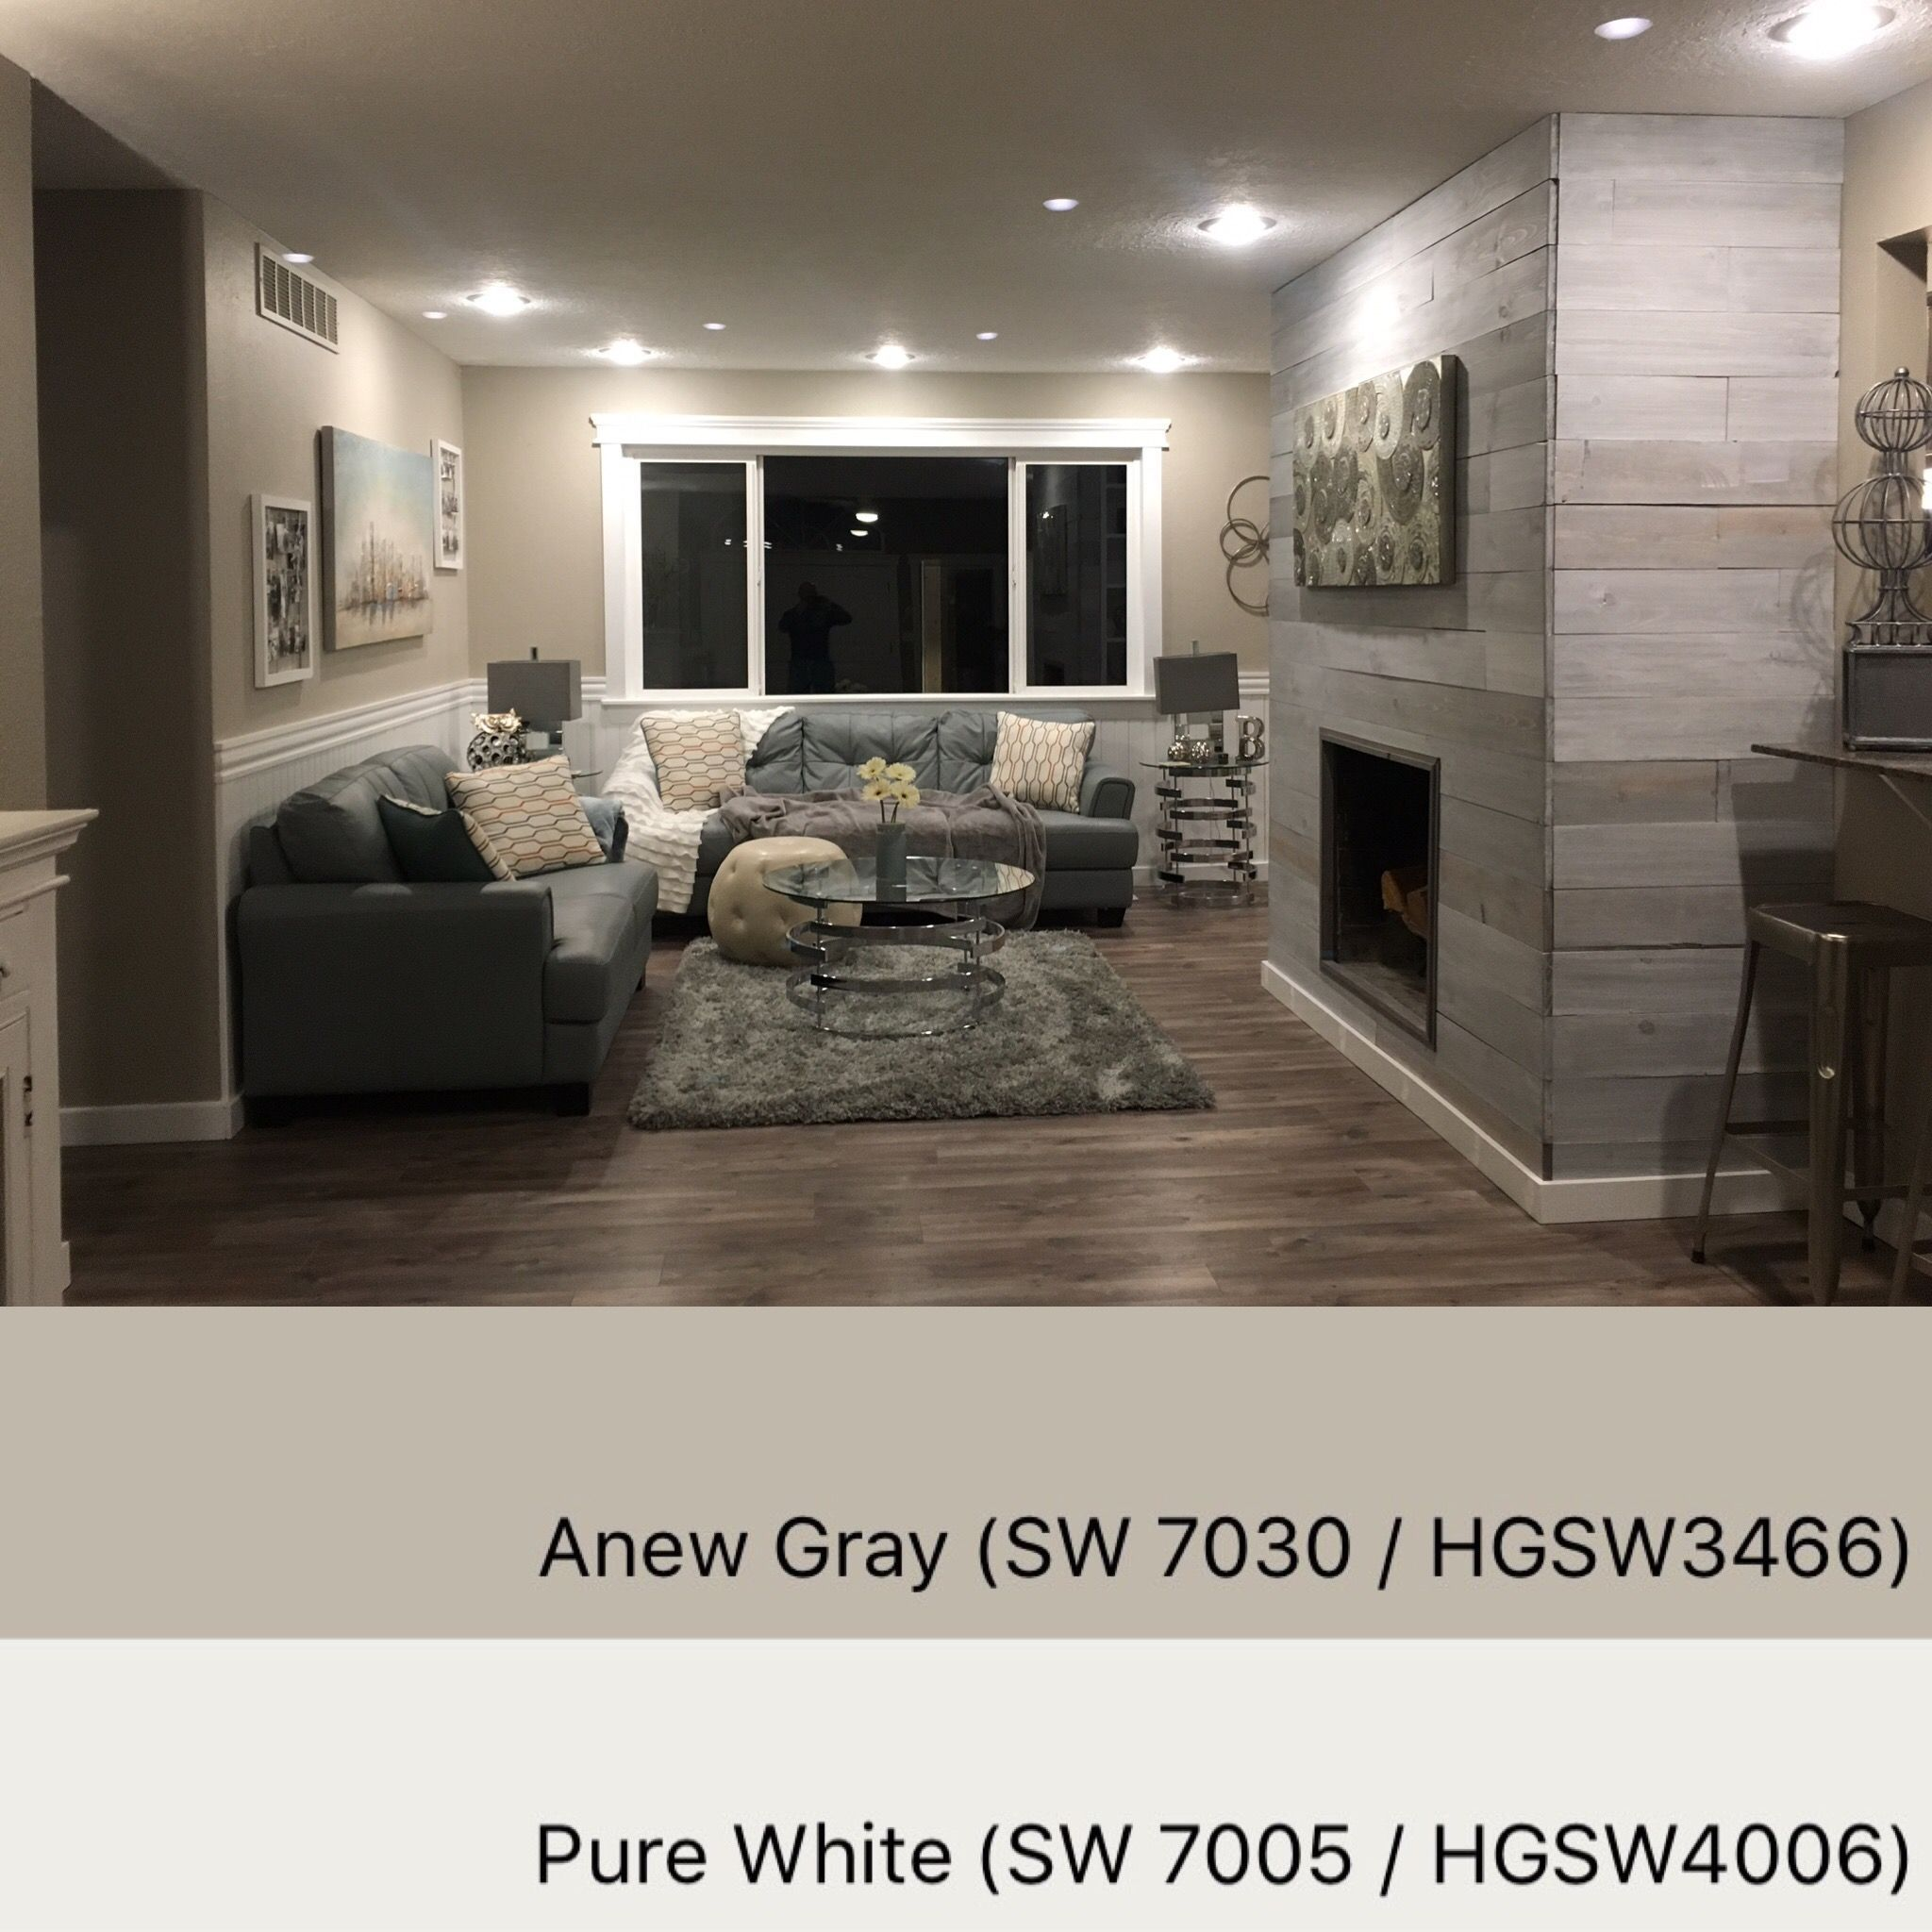 Best Sherwin Williams Paint Colors Anew Gray 7030 Pure White 400 x 300